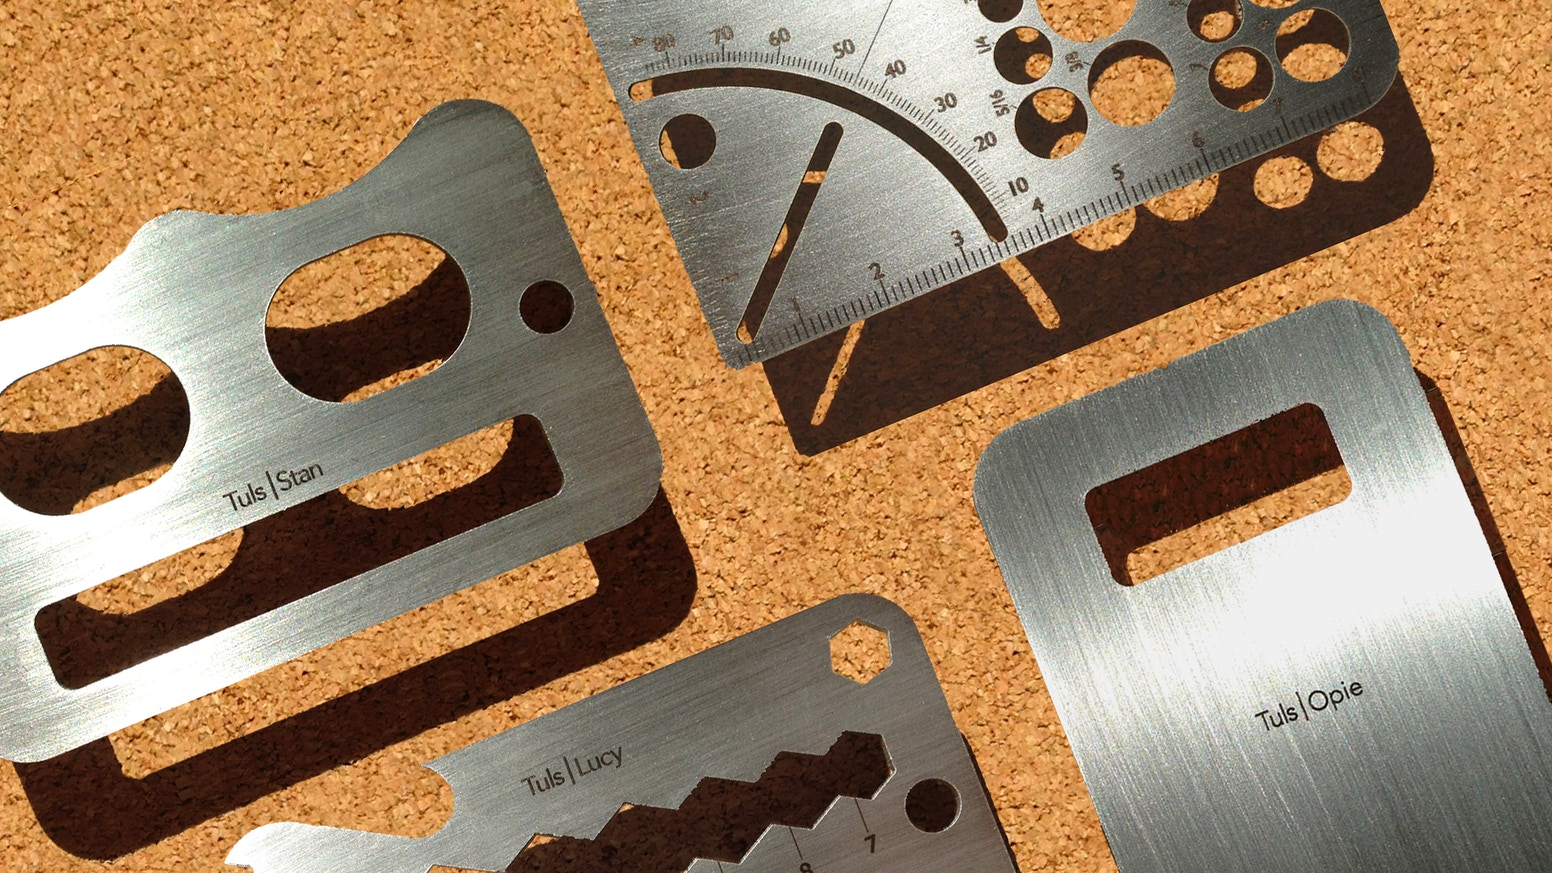 A family of credit card-sized tools - in Stainless Steel and Titanium!